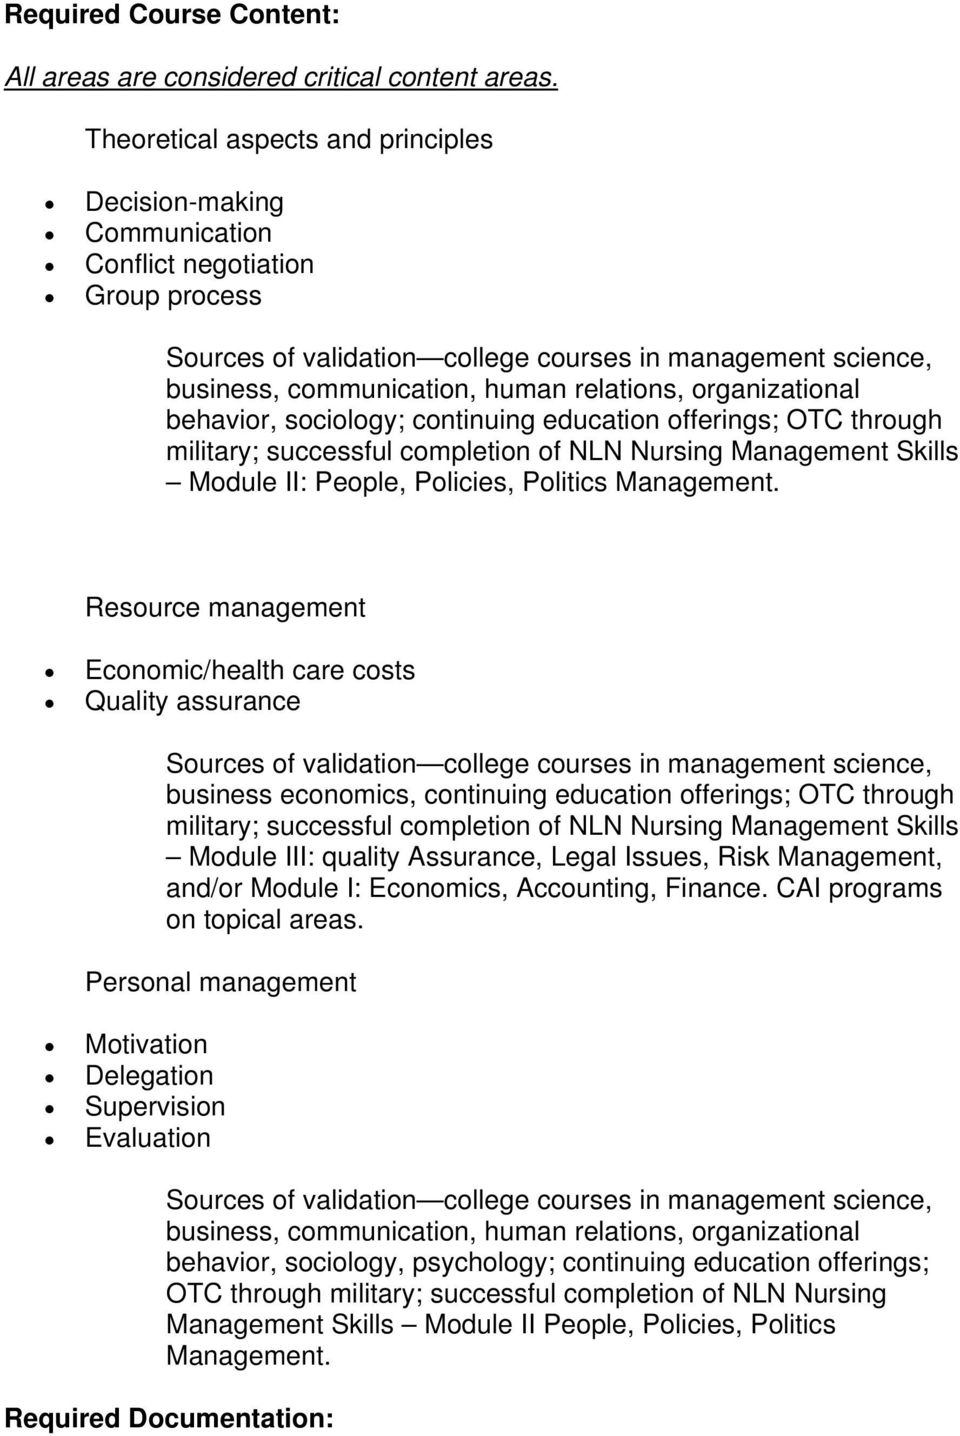 relations, organizational behavior, sociology; continuing education offerings; OTC through military; successful completion of NLN Nursing Management Skills Module II: People, Policies, Politics